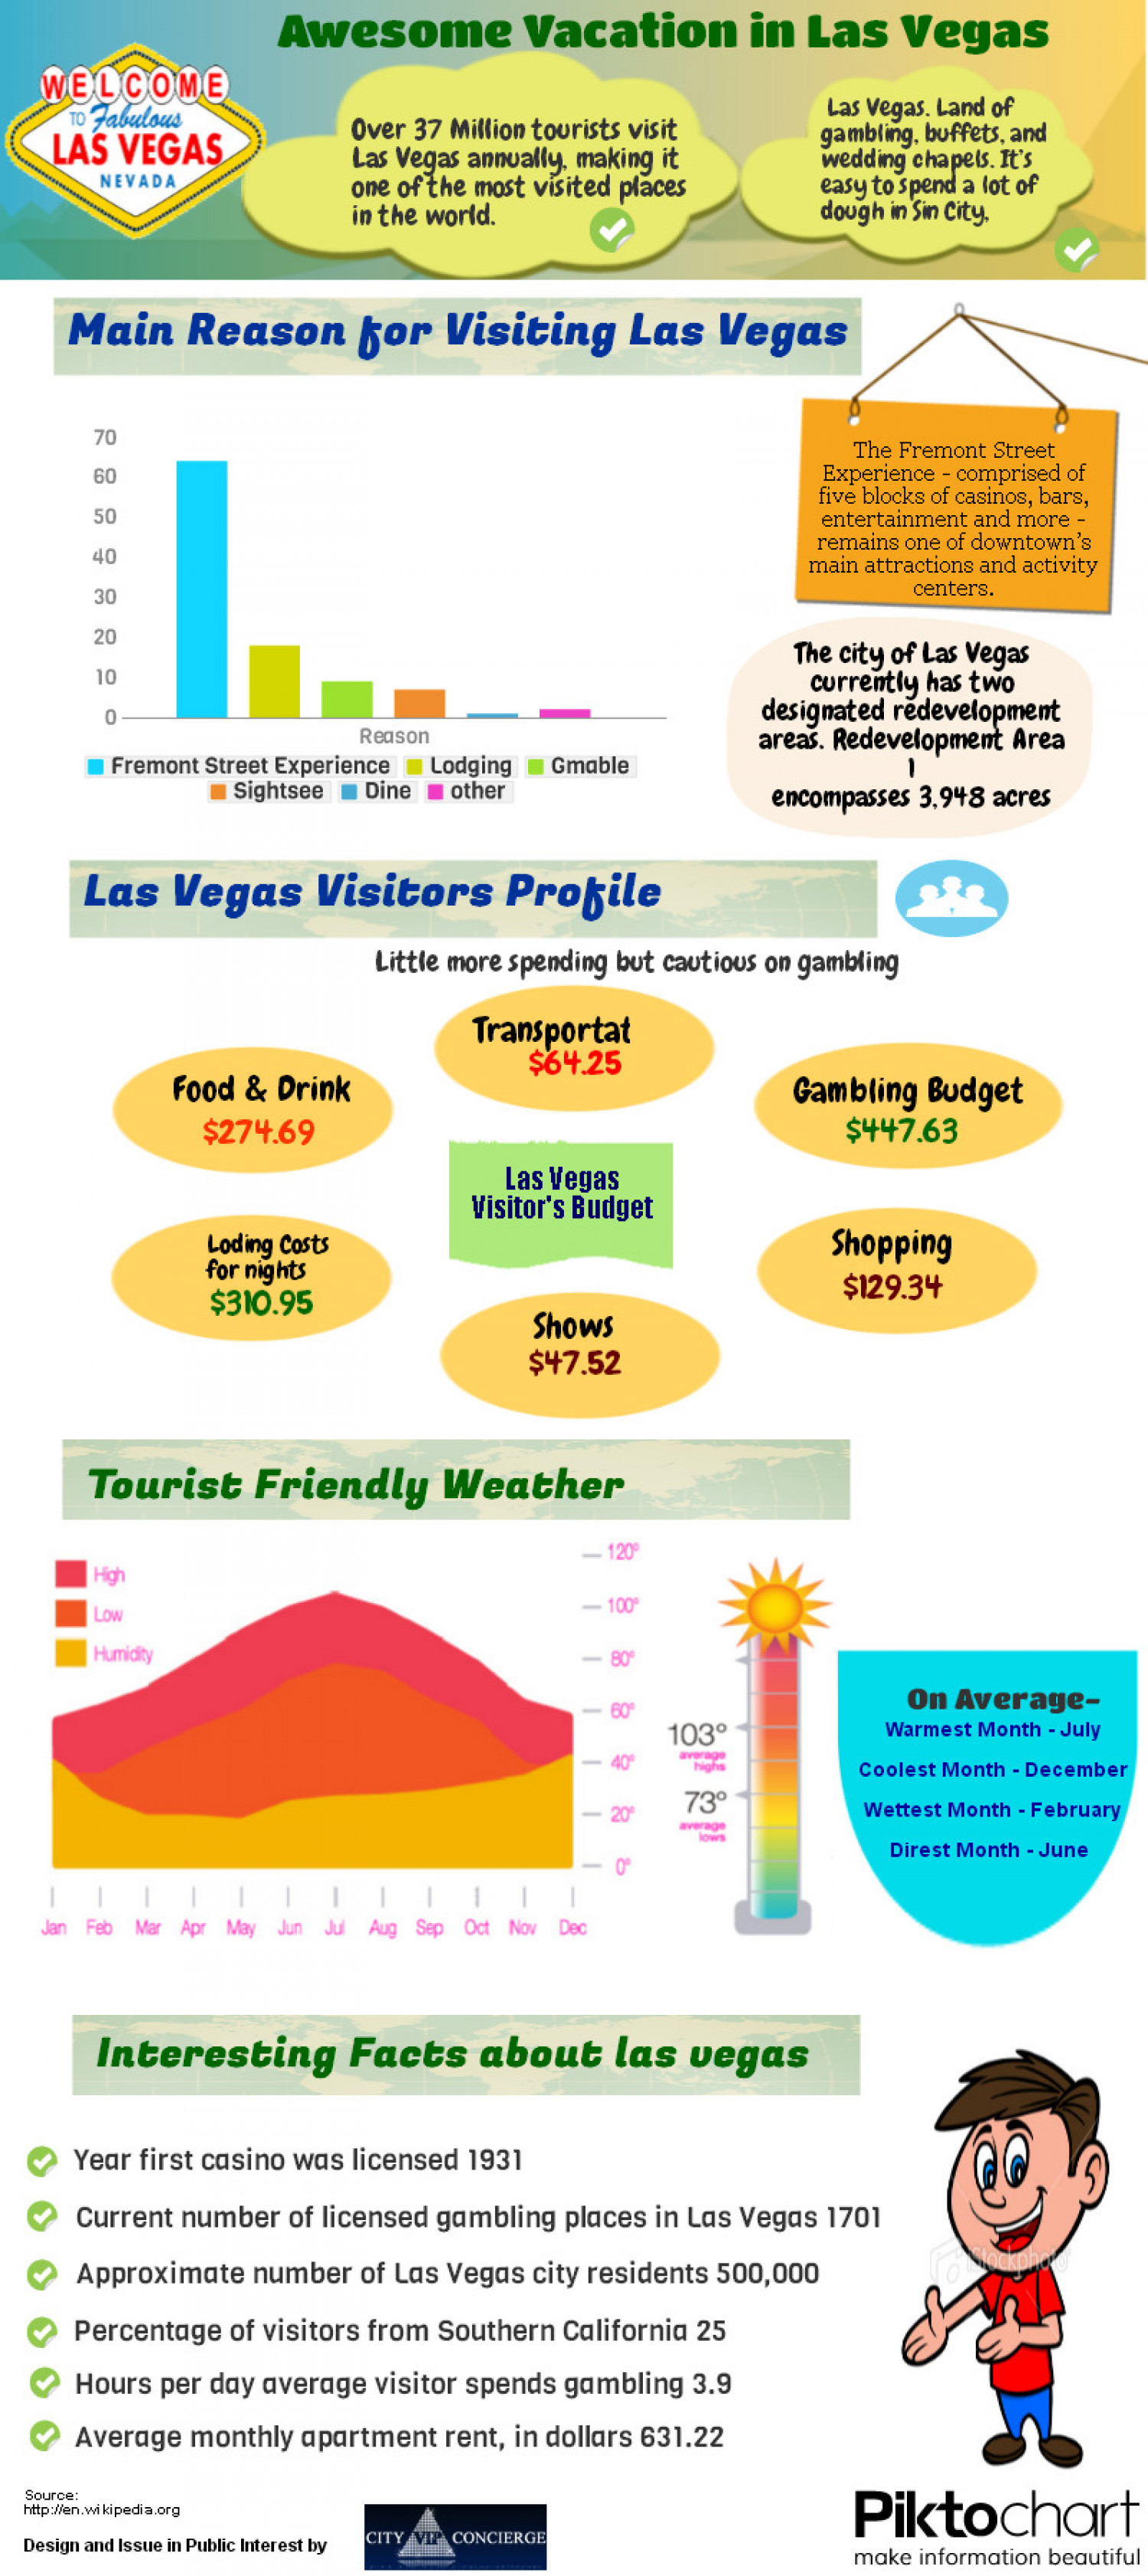 Awesome Vacation in Las Vegas Infographic